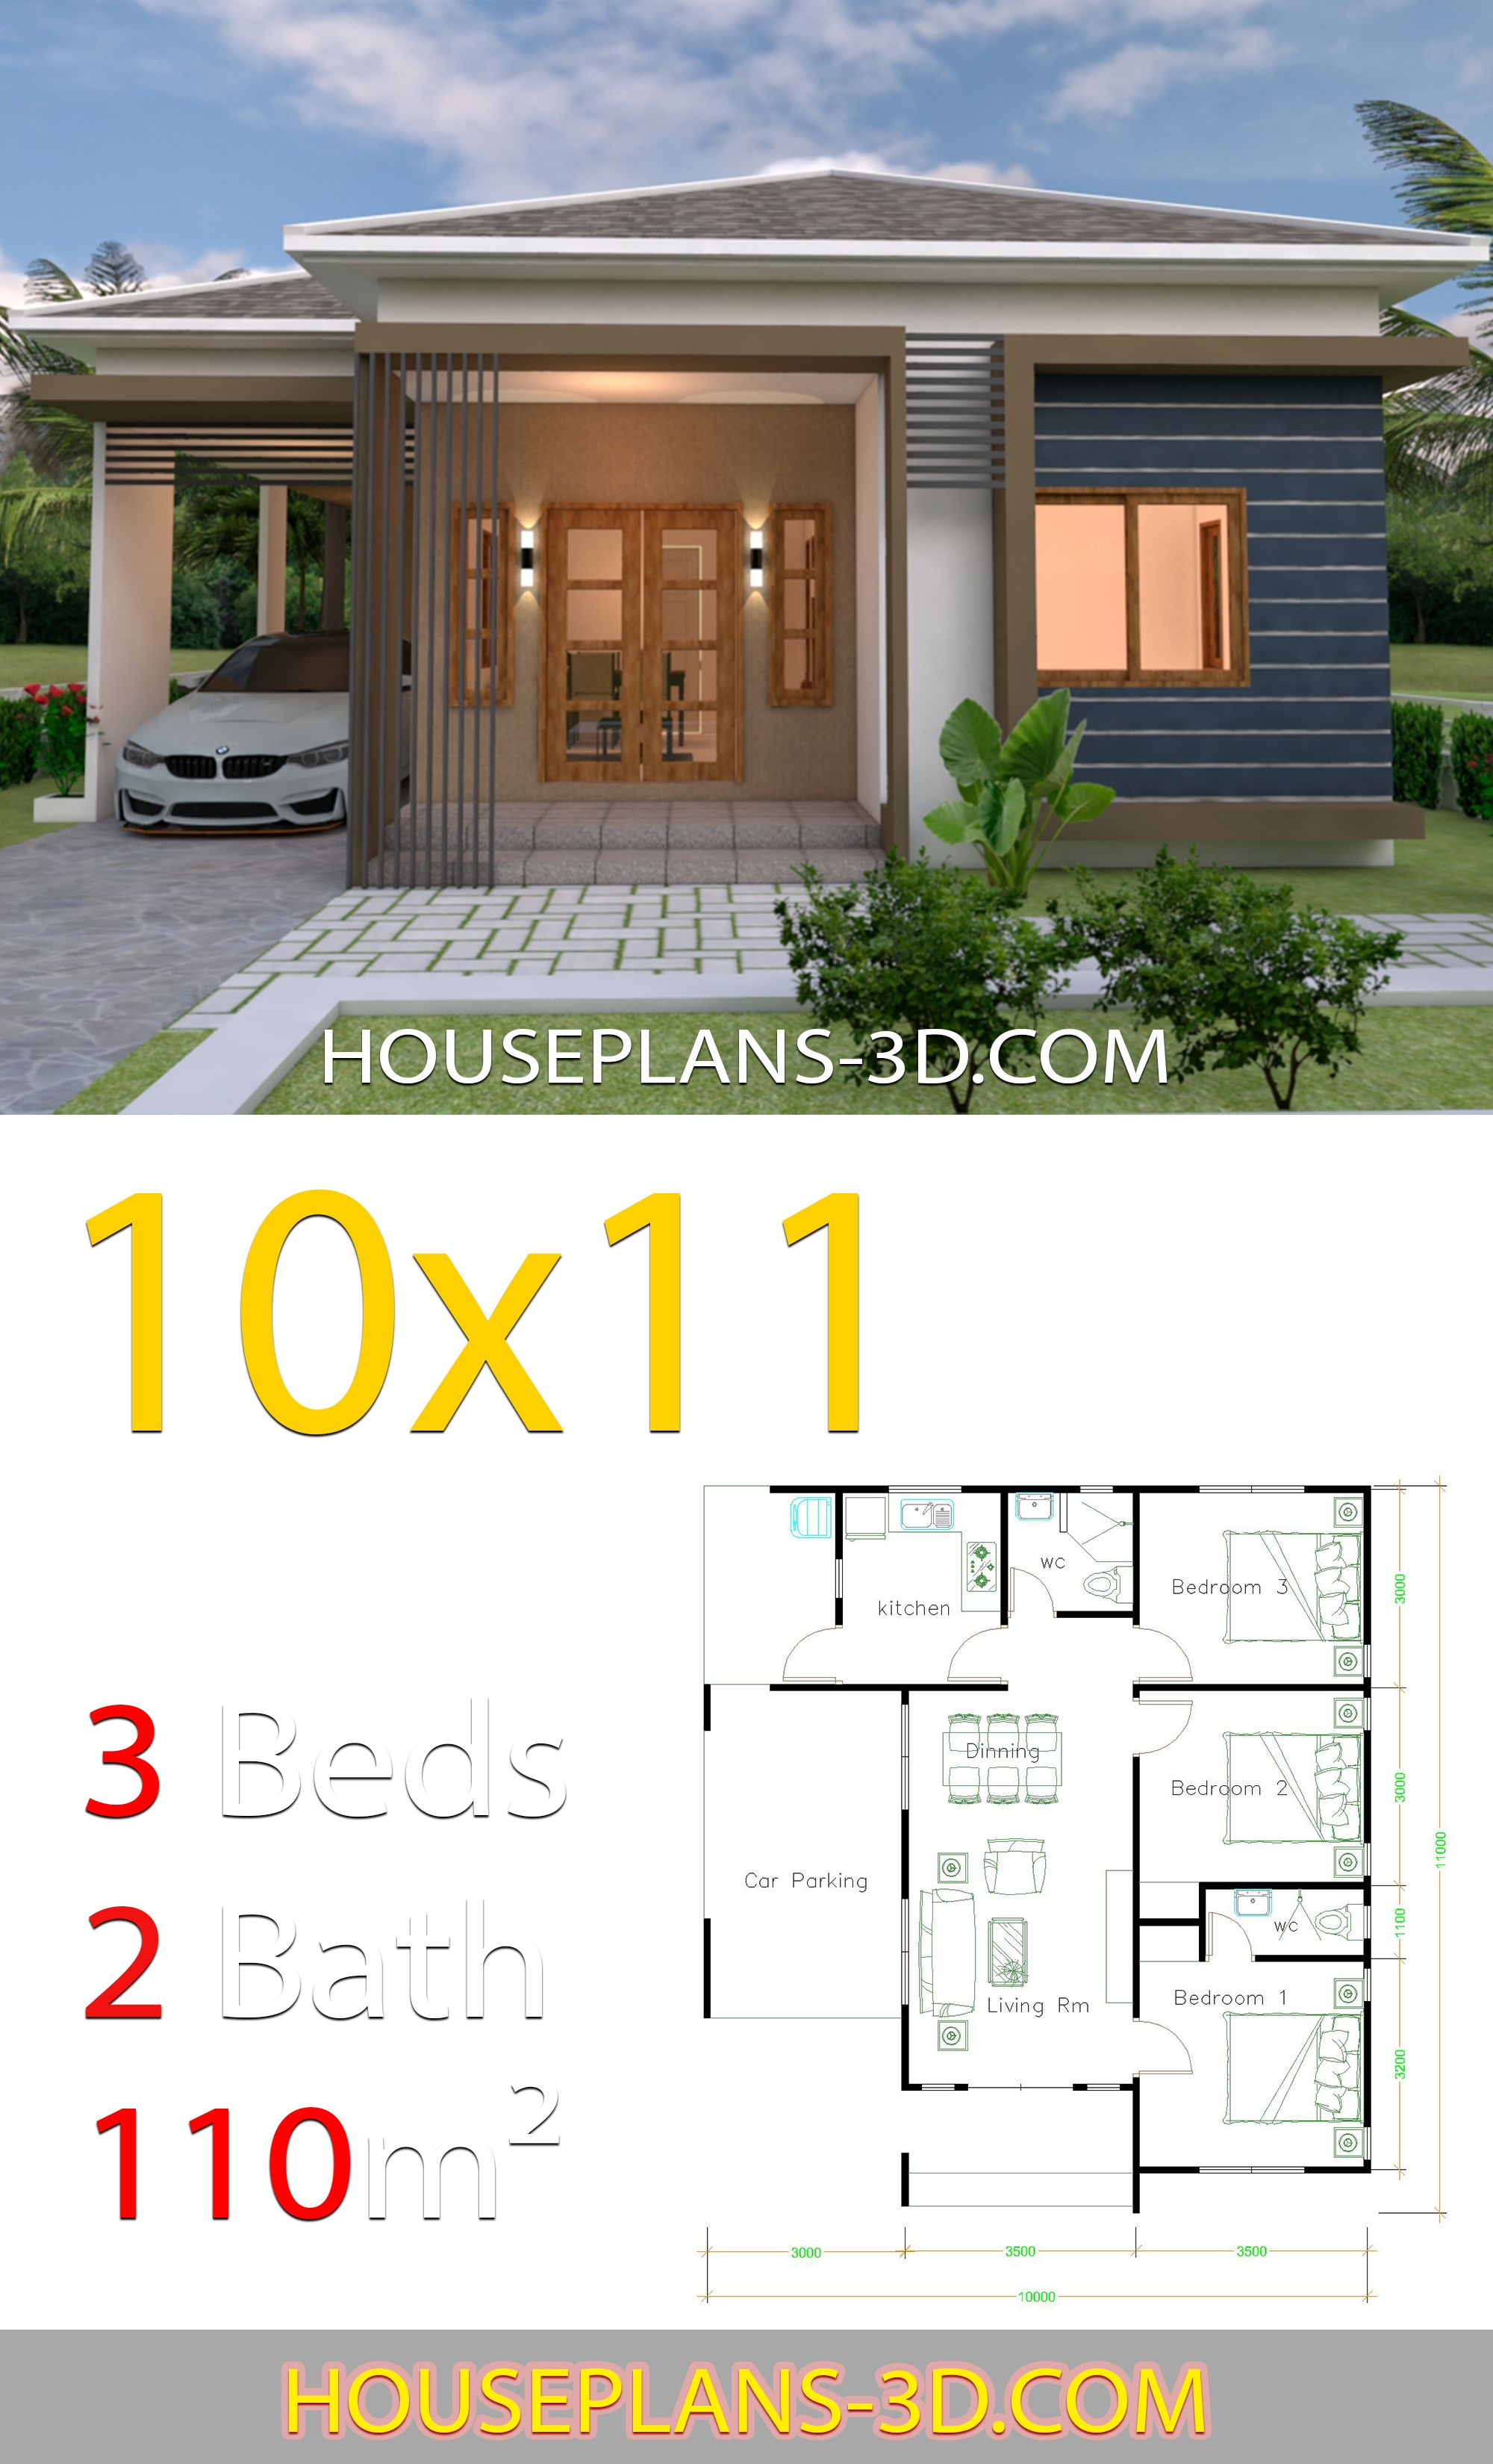 House Design 10x11 With 3 Bedrooms Hip Tiles House Plans 3d In 2020 House Plans Beautiful House Plans Bungalow House Plans